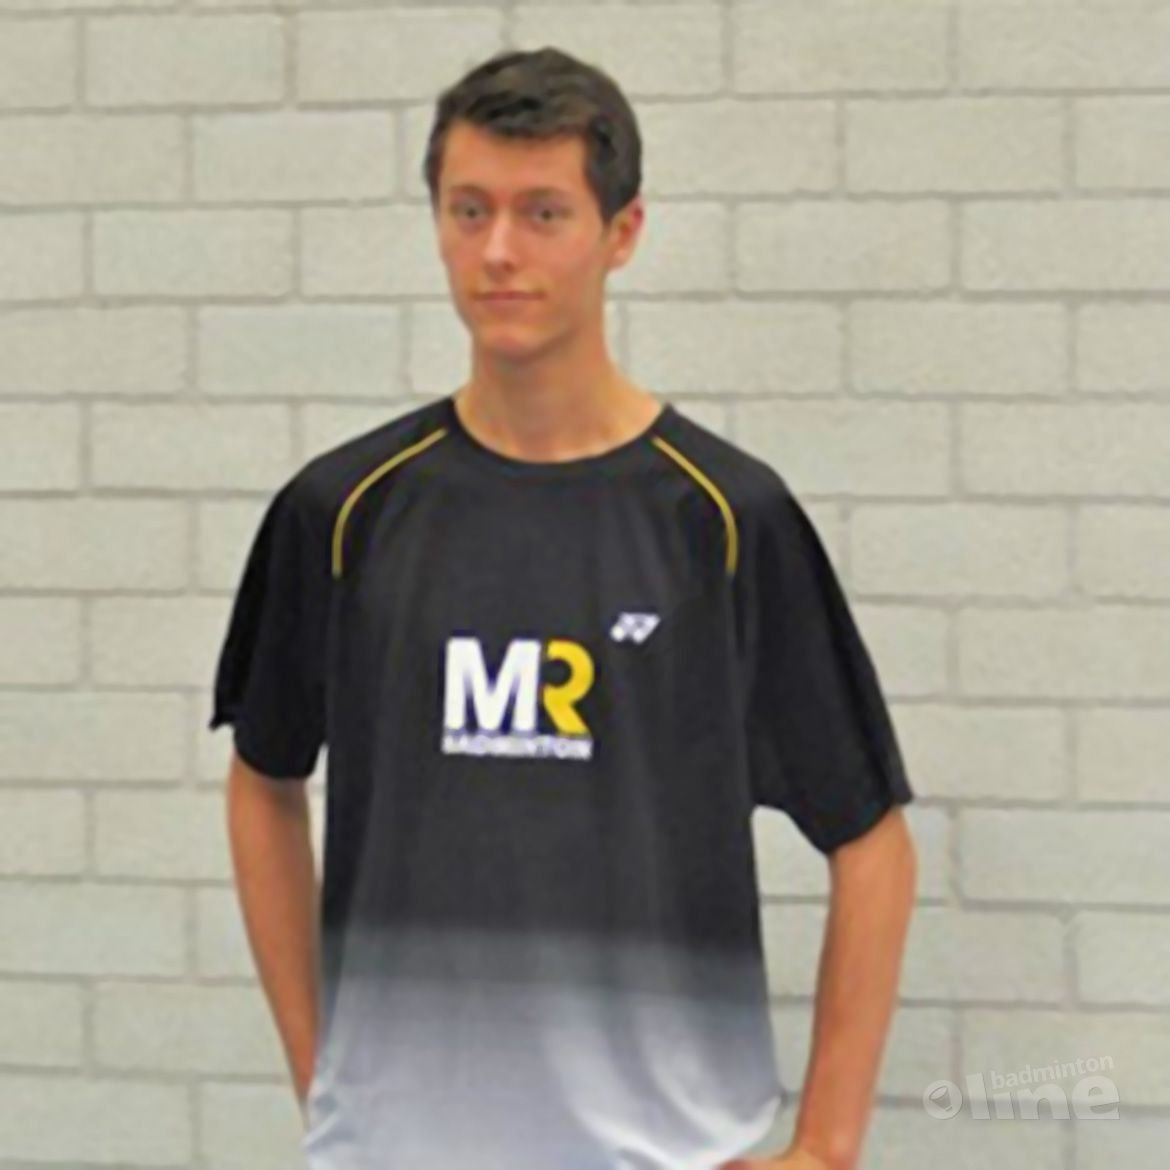 Vincent de Vries wordt gesponsord door MR Badminton